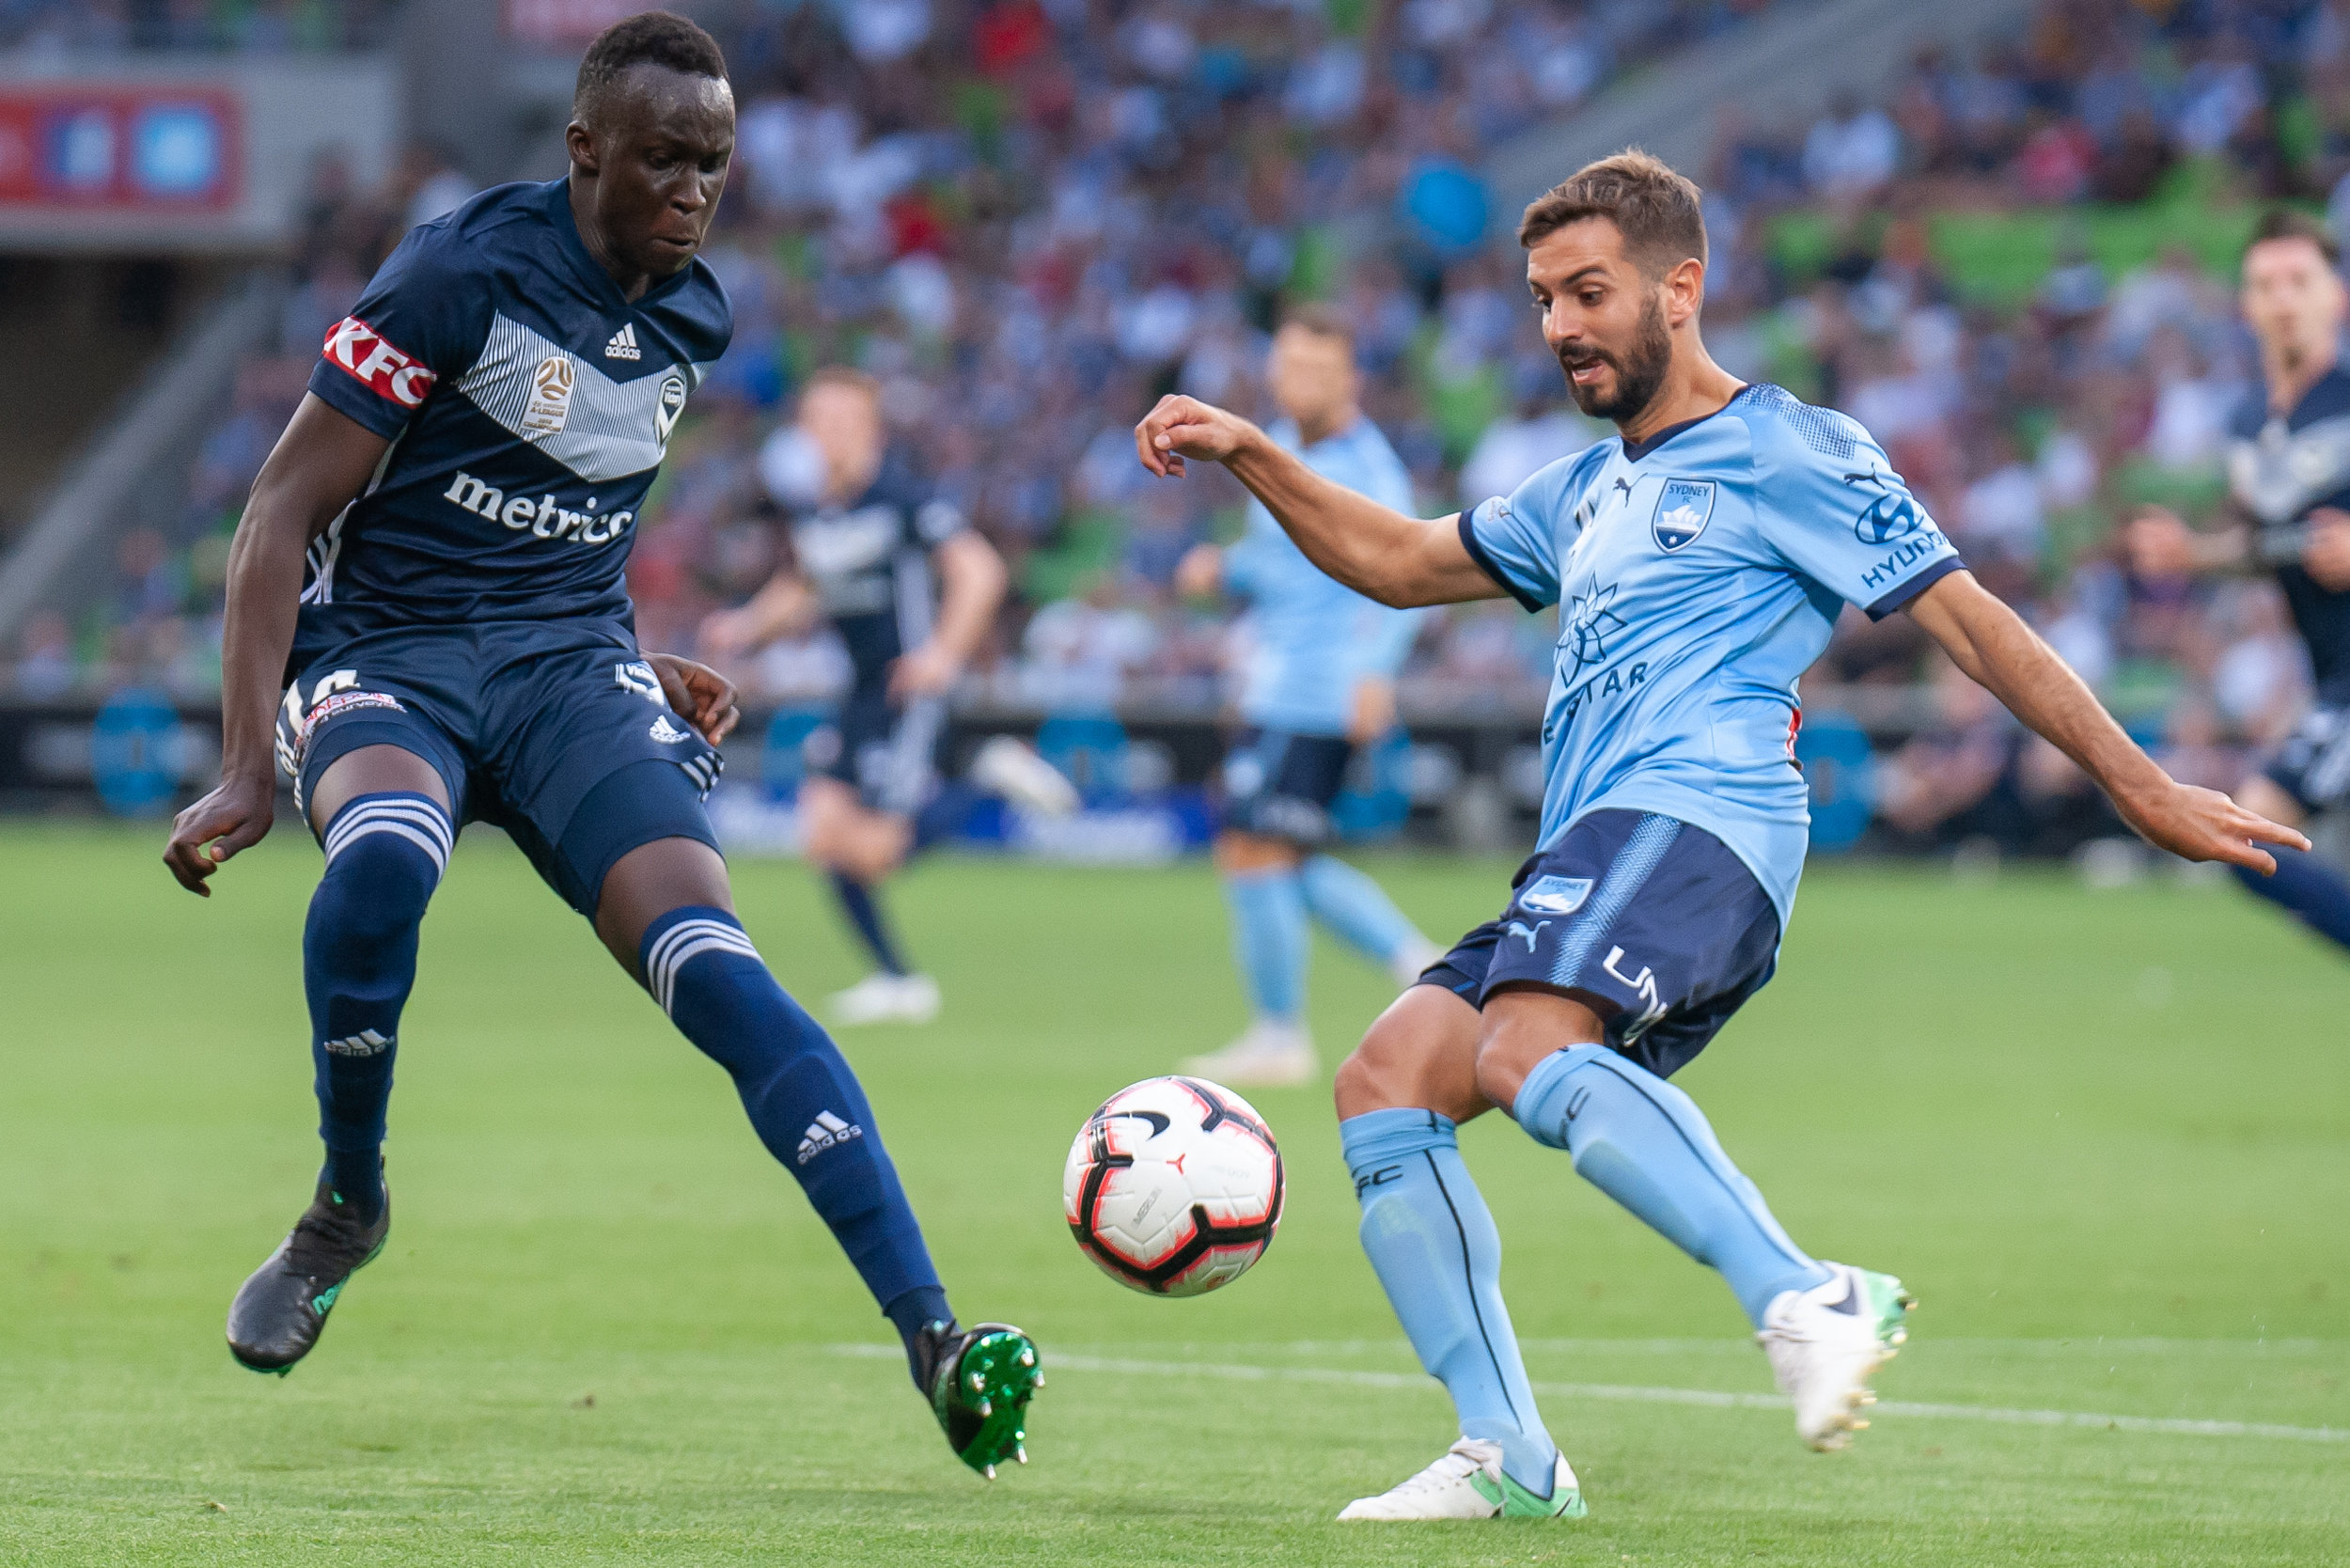 MELBOURNE, VIC - JANUARY 26: Melbourne Victory defender Thomas Deng (14) competes for the ball at the Hyundai A-League Round 16 soccer match between Melbourne Victory and Sydney FC at AAMI Park in VIC, Australia 26 January 2019. (Image by Speed Media/Icon Sportswire)